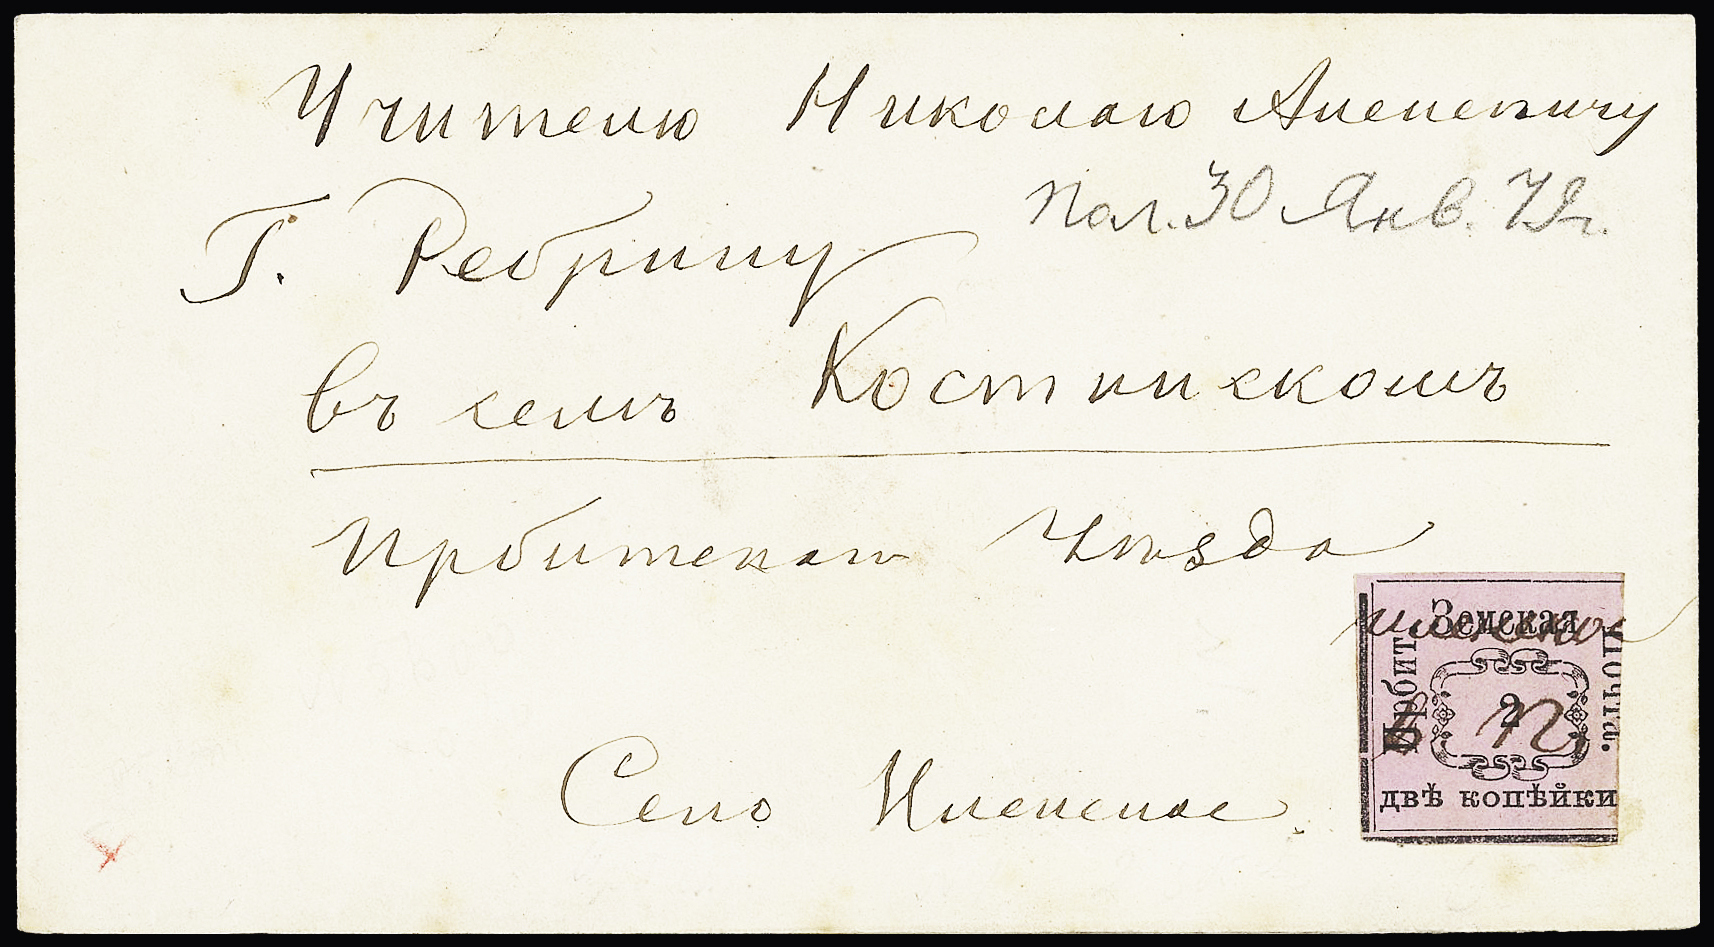 Lot 454 - Eastern Europe » RUSSIA - ZEMSTVOS » Irbit (Perm Government)  -  Le Timbre Classique SA SALE ON OFFERS N ° 37 PARIS